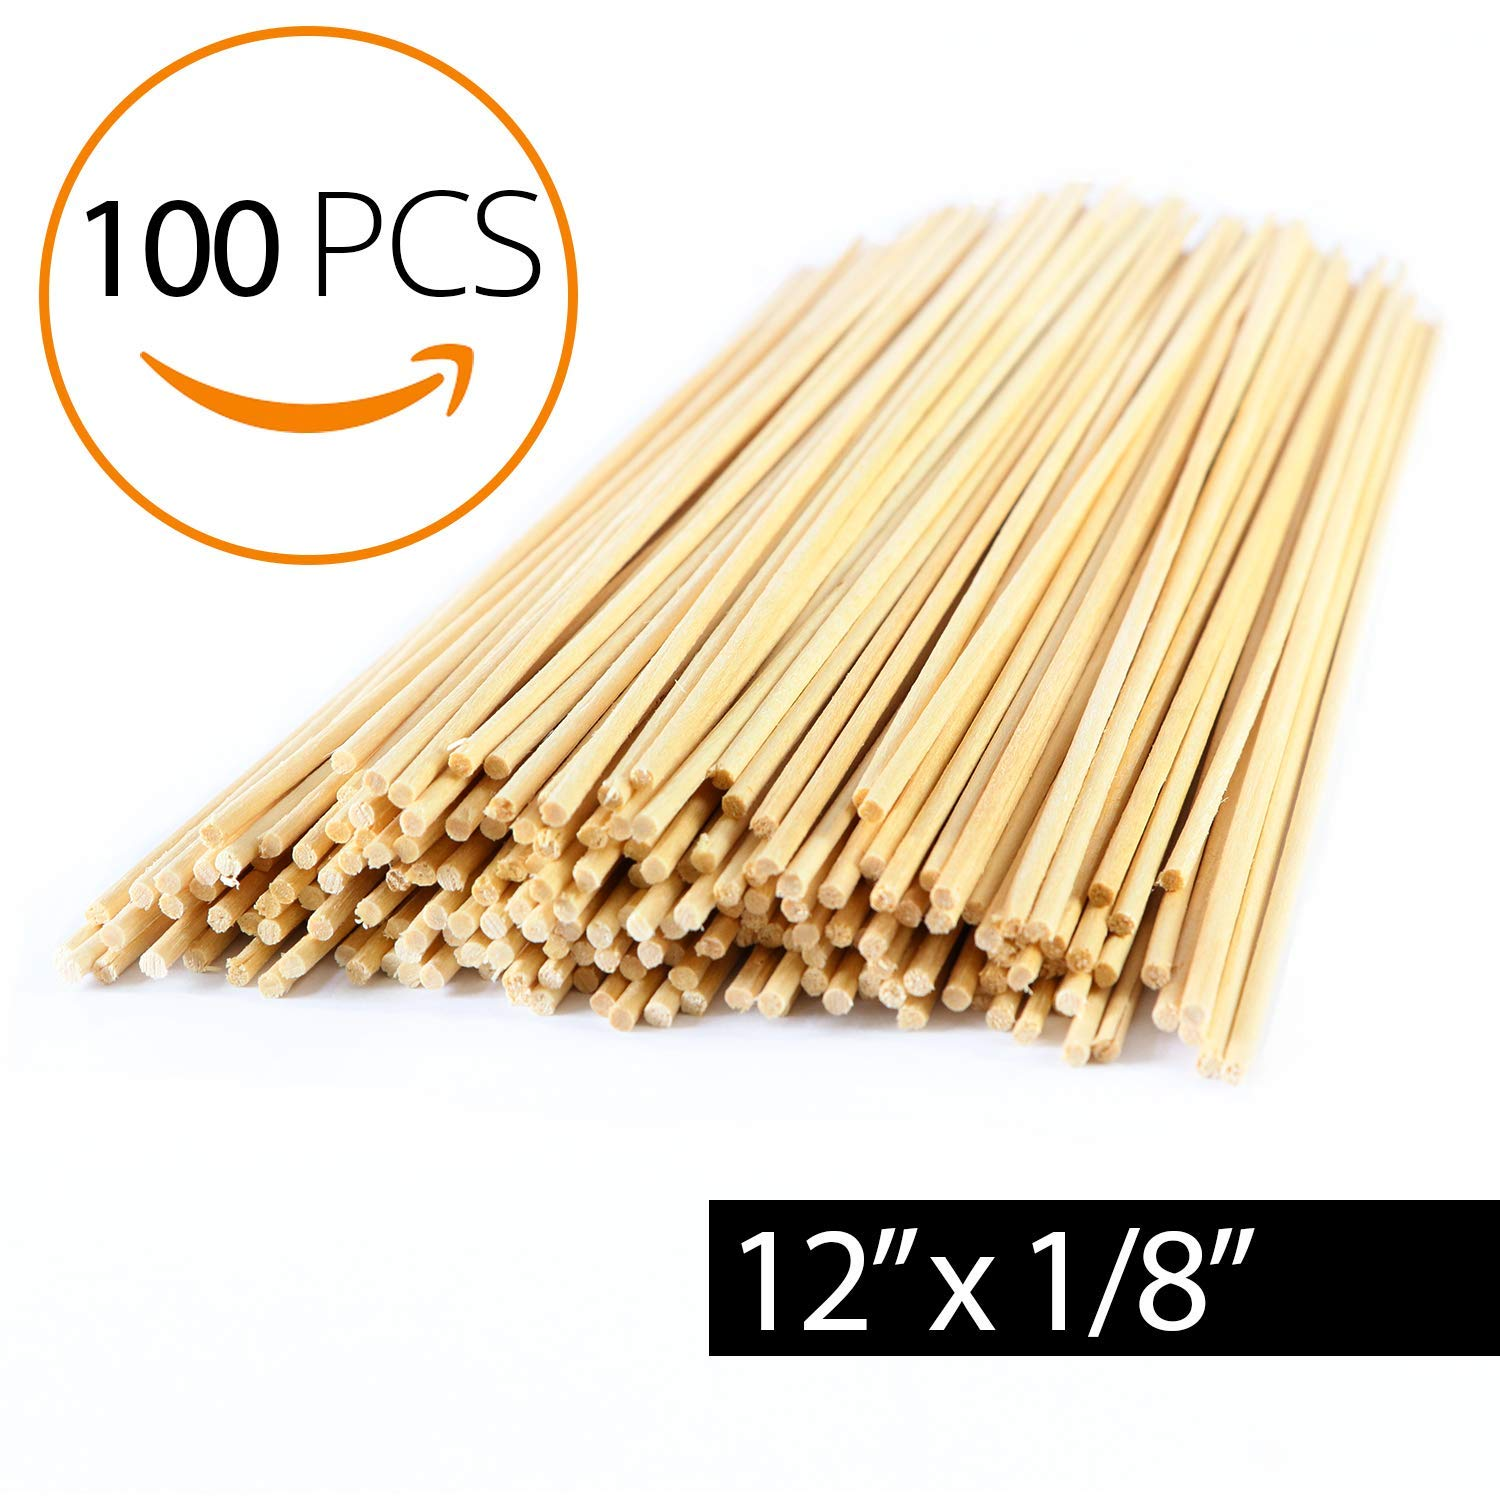 Cheap Lowes Wooden Dowels Find Lowes Wooden Dowels Deals On Line At